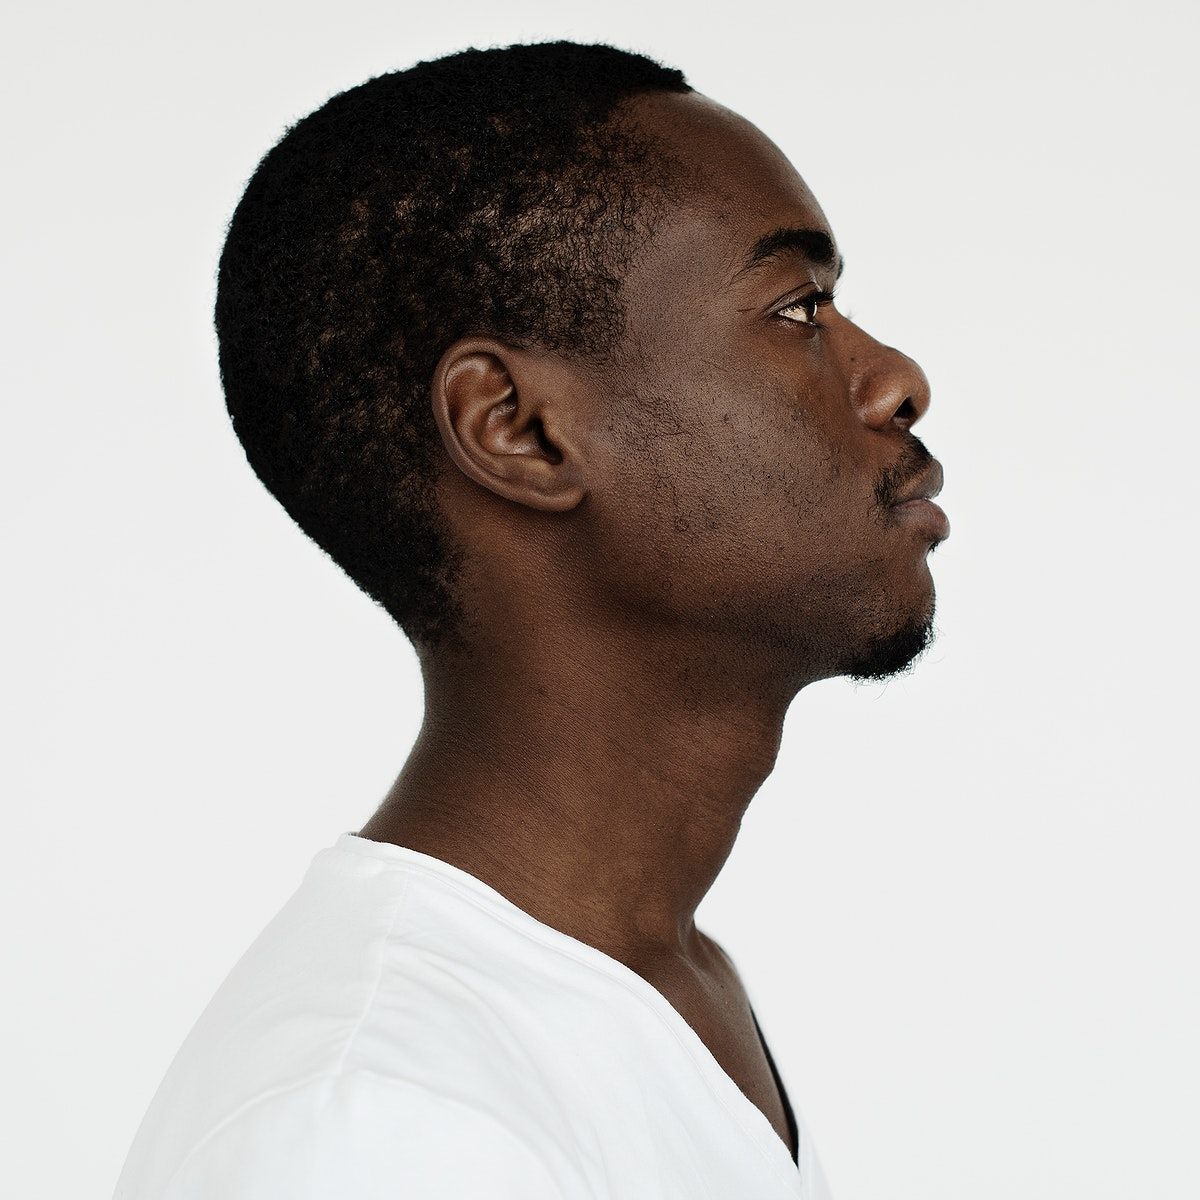 Worldface-Namibian guy in a white background